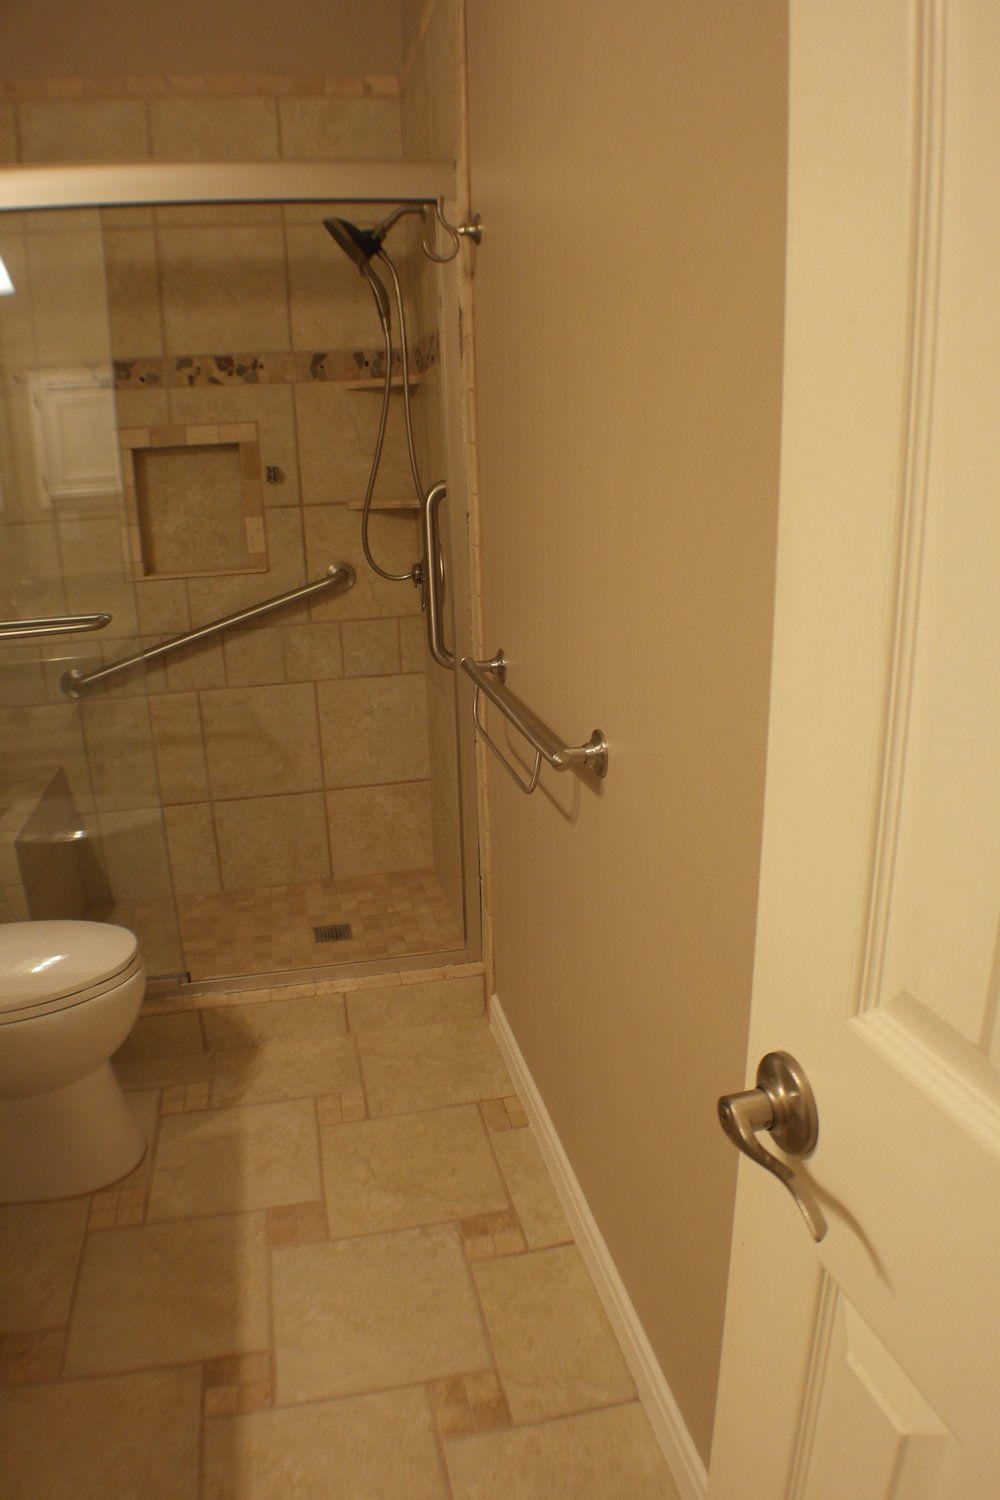 TUBTOSHOWERS CONVERSIONS EZACCESSBATHROOMS.COM 8322028453 COKER 054.JPG